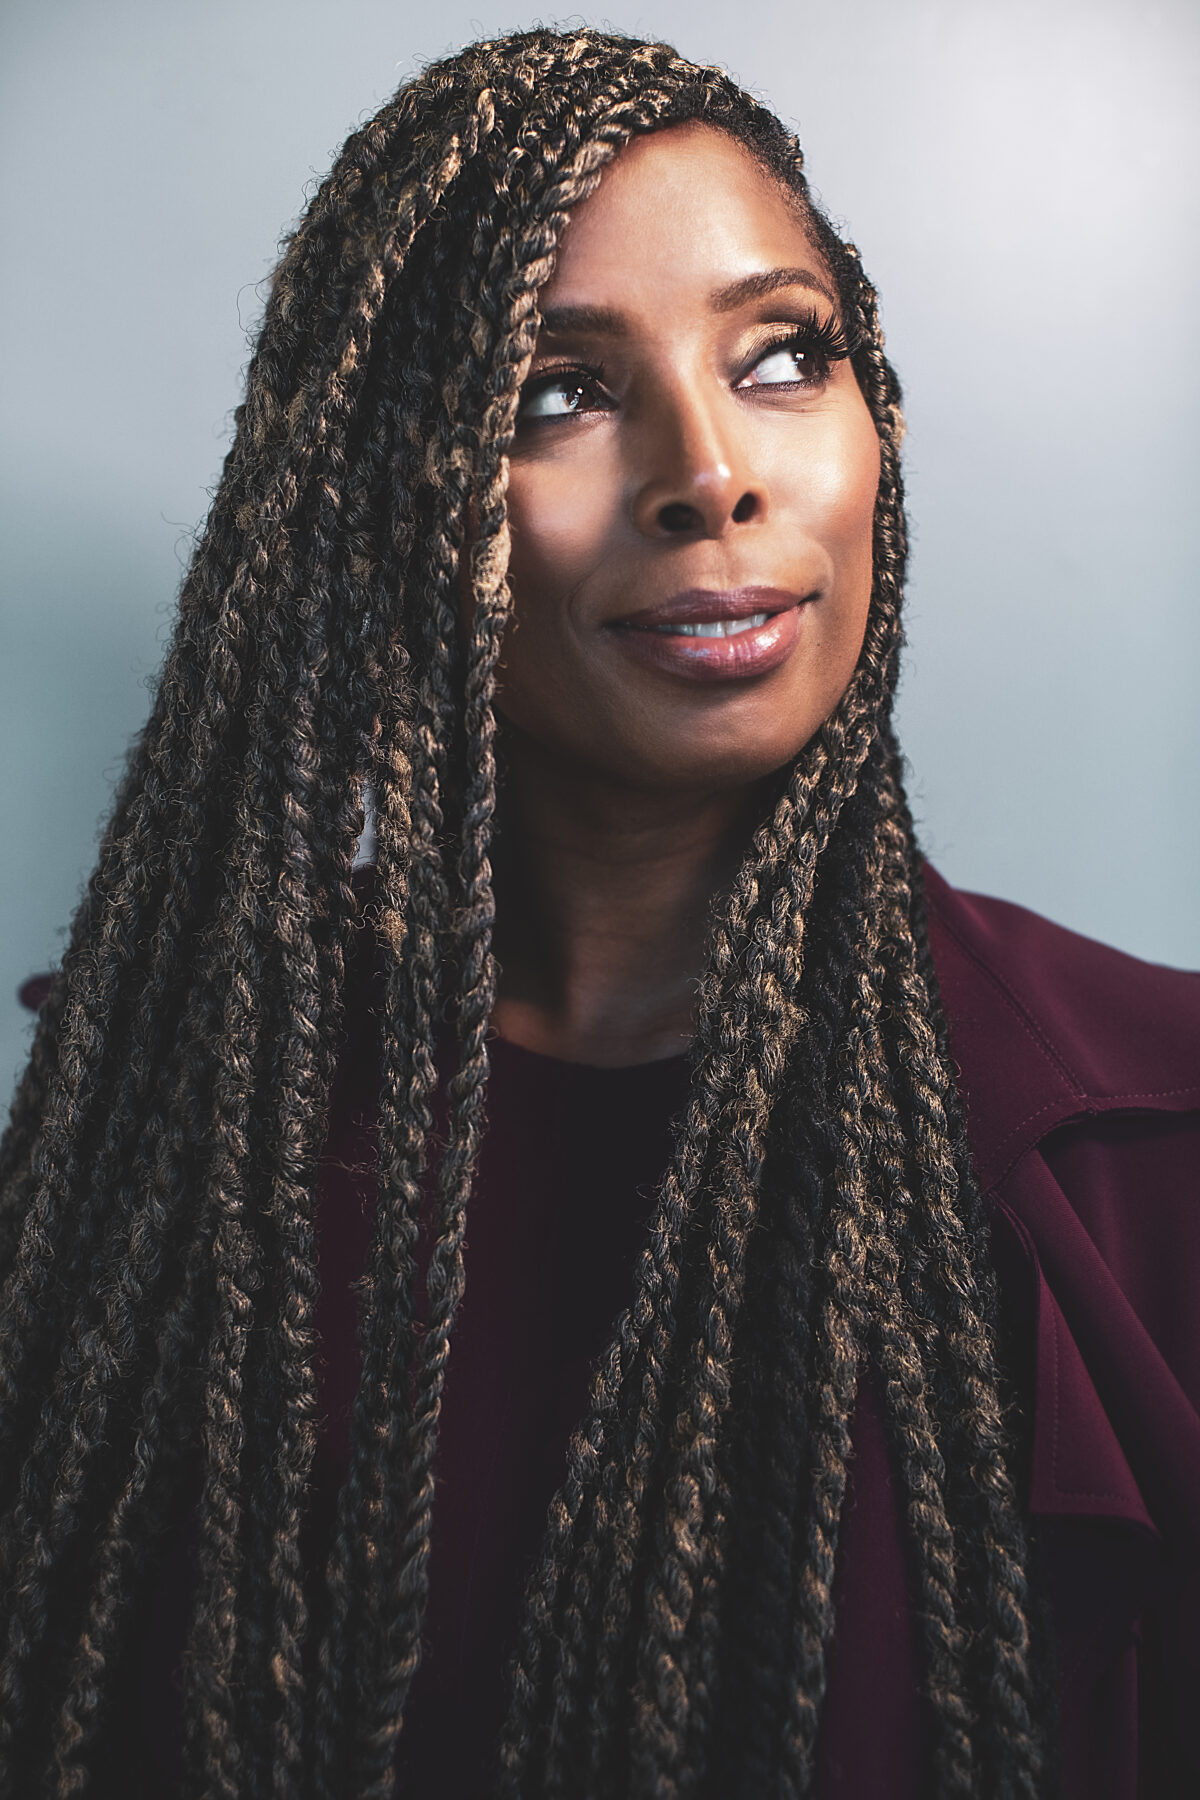 Acclaimed Actress, Director and Acting Coach Tasha Smith Expands Her TSAW Actors Workshop With Online Classes